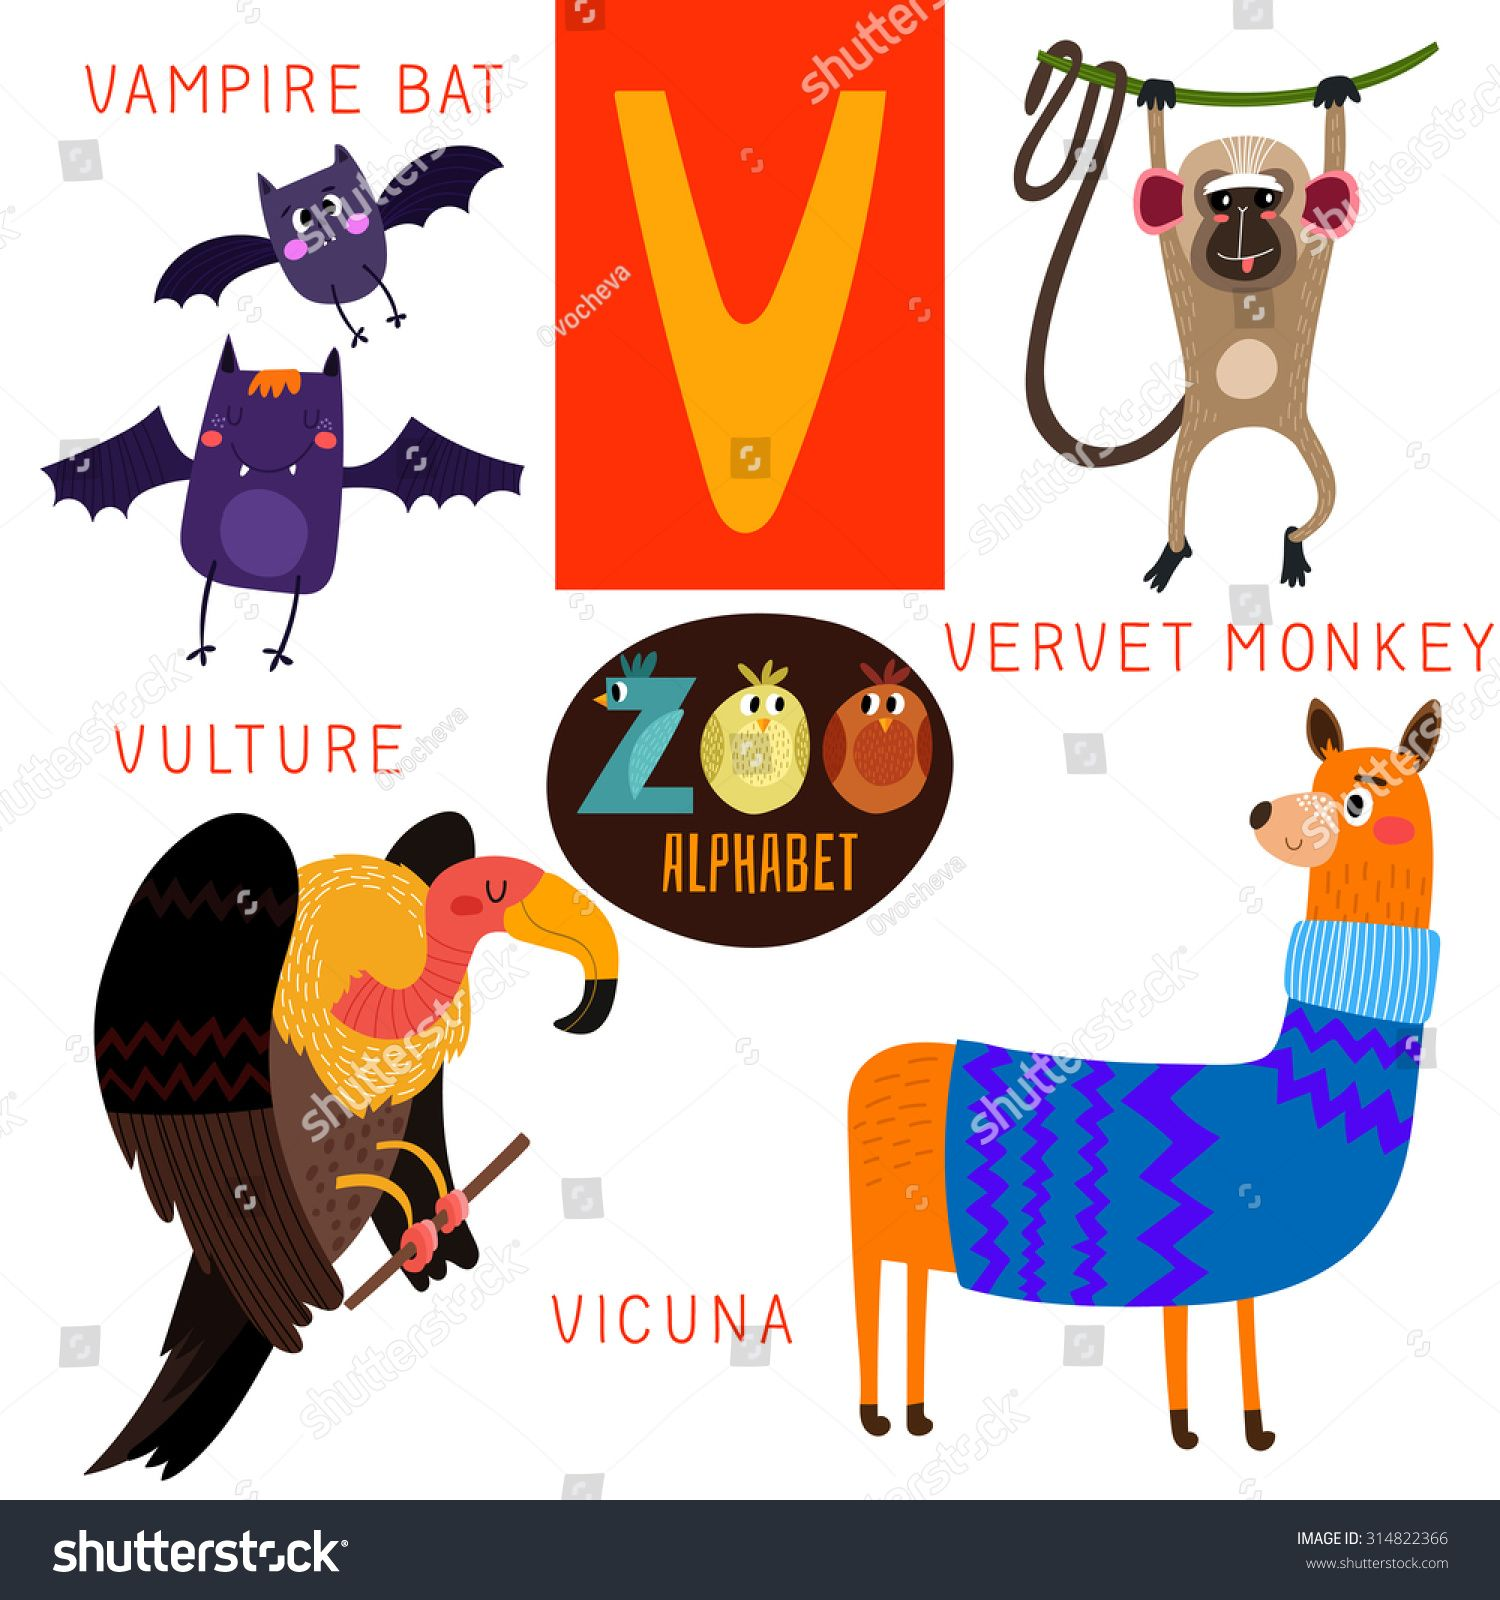 Cute Zoo Alphabet In Vector V Letter Funny Cartoon Animals Vampire Bat Vervet Monkey Vulture Vicuna Alphabet Cute Cartoon Animals Cartoon Animals Vampire Bat